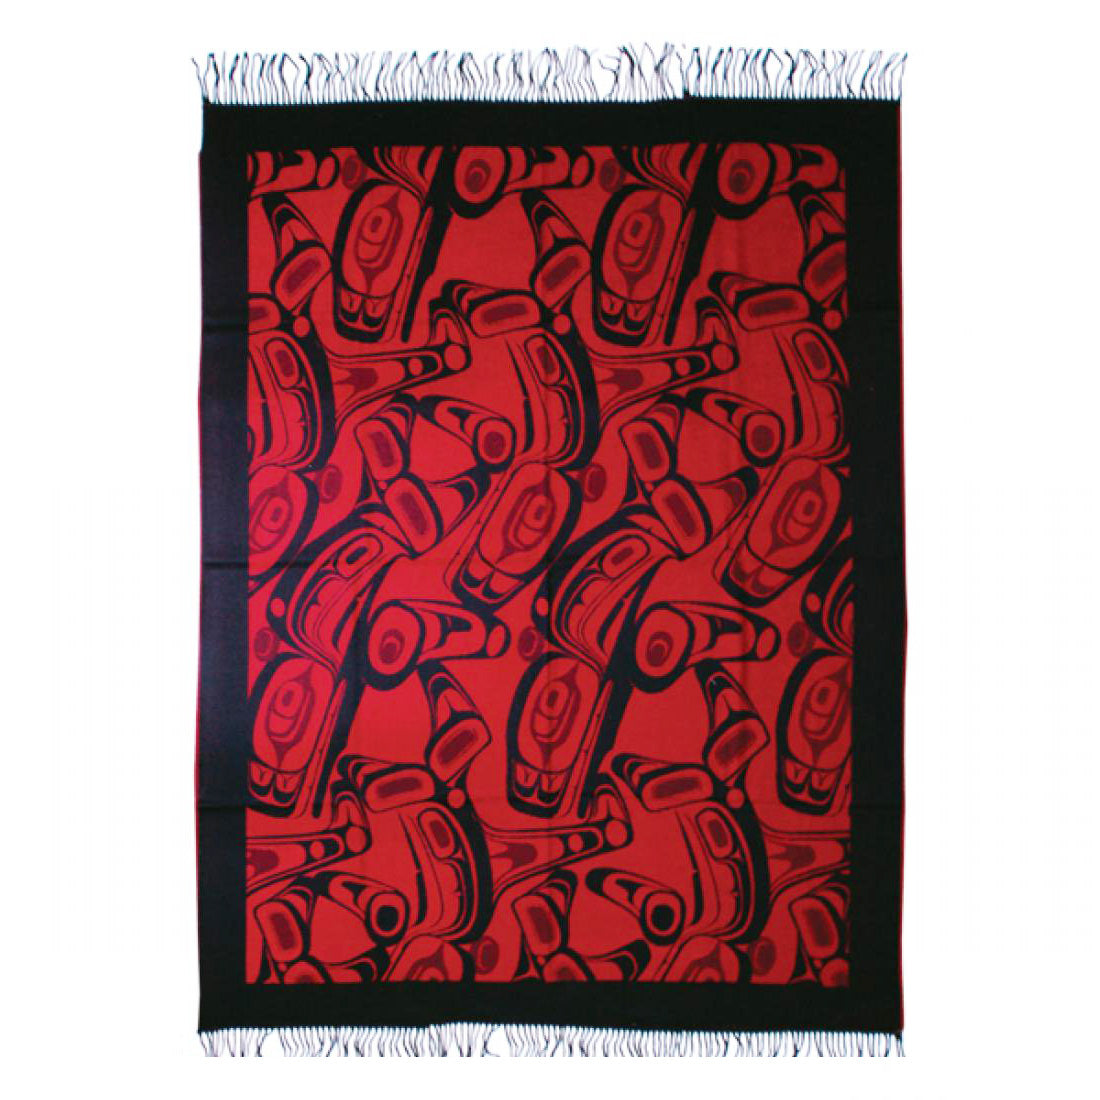 Native Art Blanket - Orca by Kelly Robinson (Red/Black)